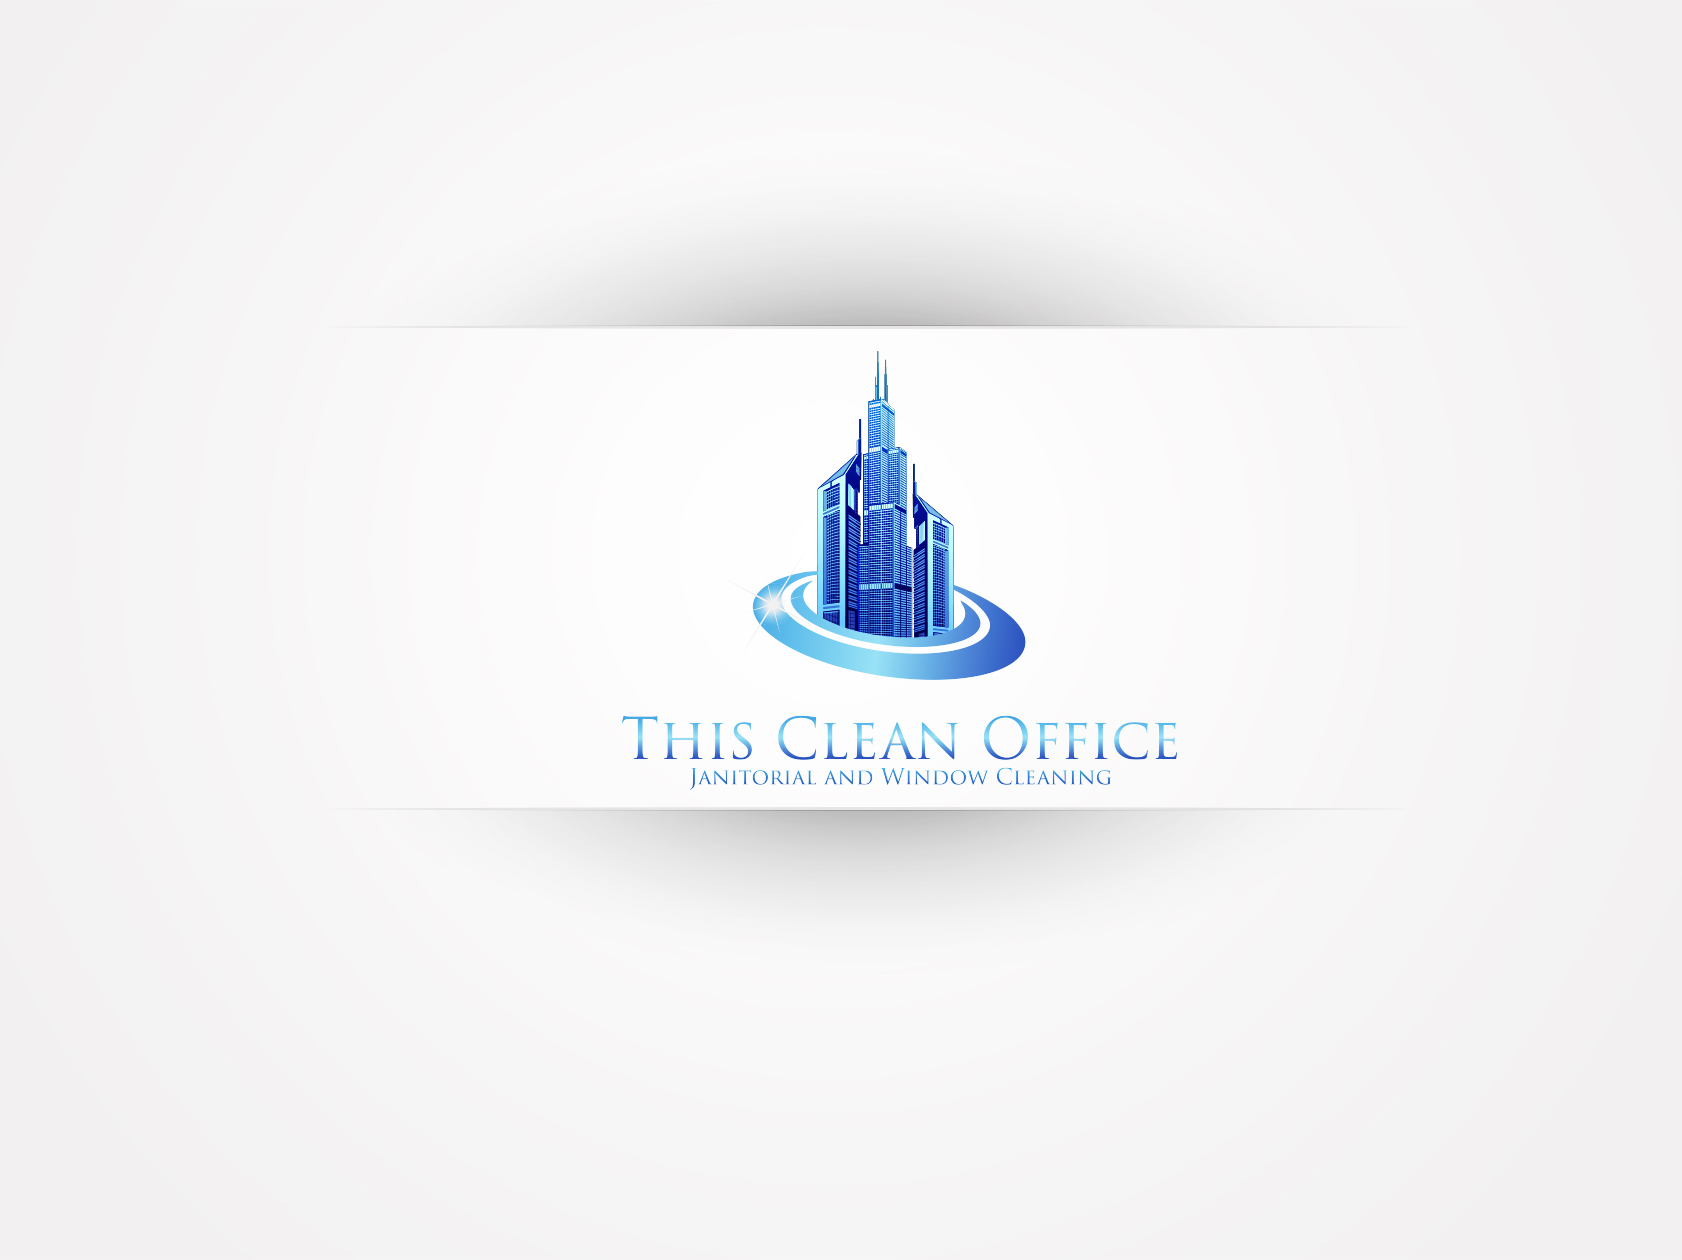 Logo Design by OmegaDesigns - Entry No. 61 in the Logo Design Contest Professional and Unforgettable Logo Design for This Clean Office.